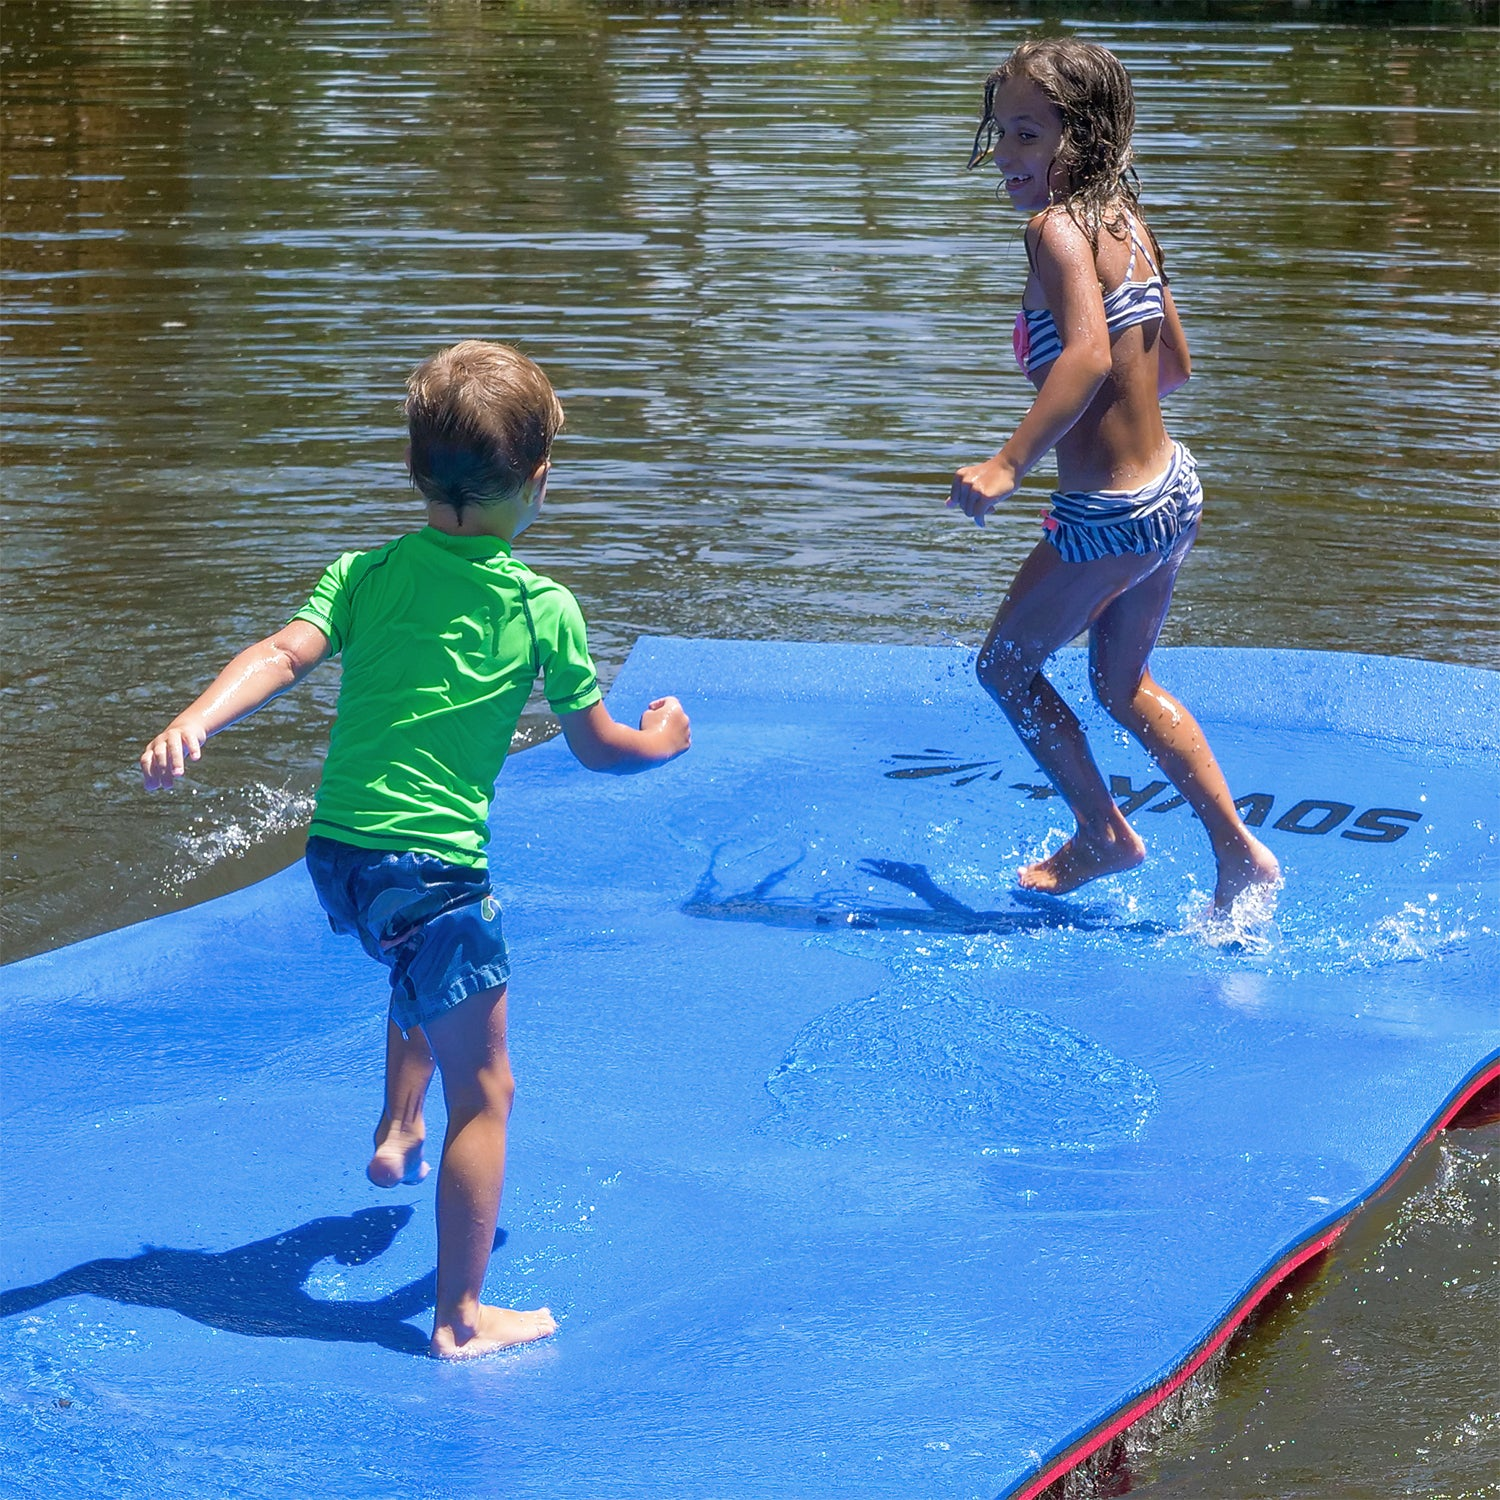 Floating Island For Lakes or Pools - 12 X 6 FEET (RED/BLACK/BLUE)